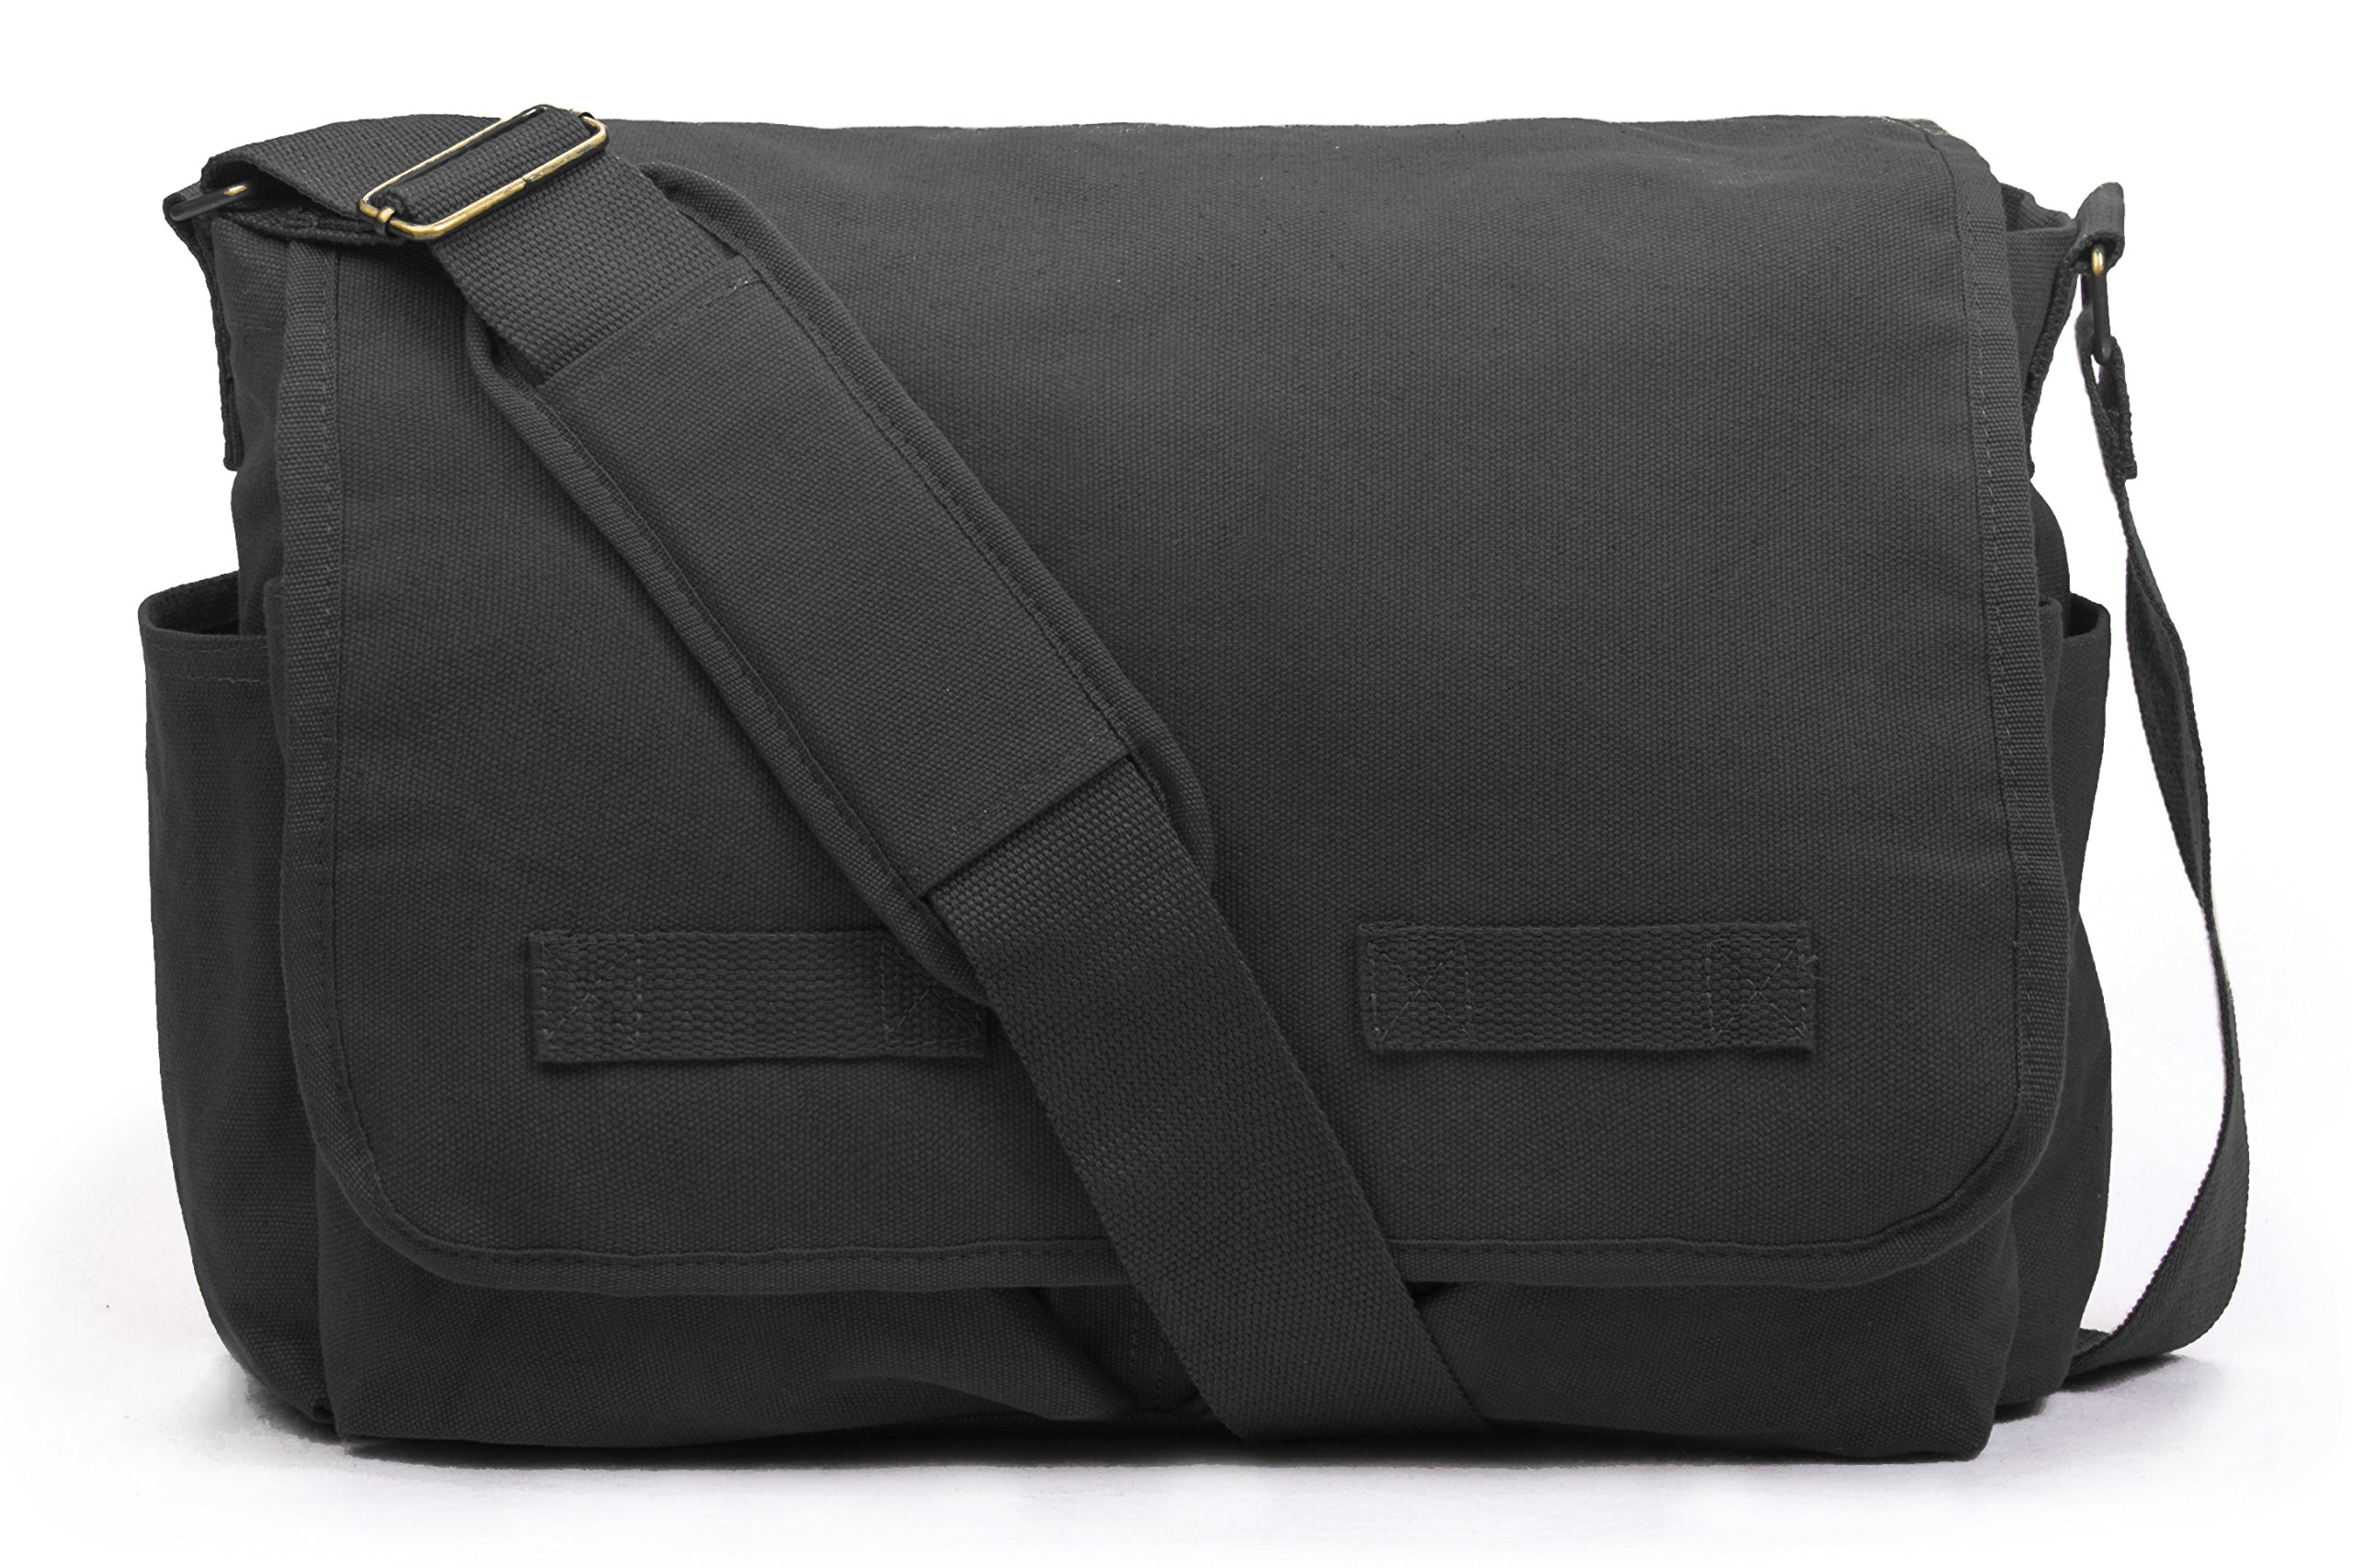 Sweetbriar Classic Messenger Bag - Vintage Canvas Shoulder, Black, Size Large by Sweetbriar